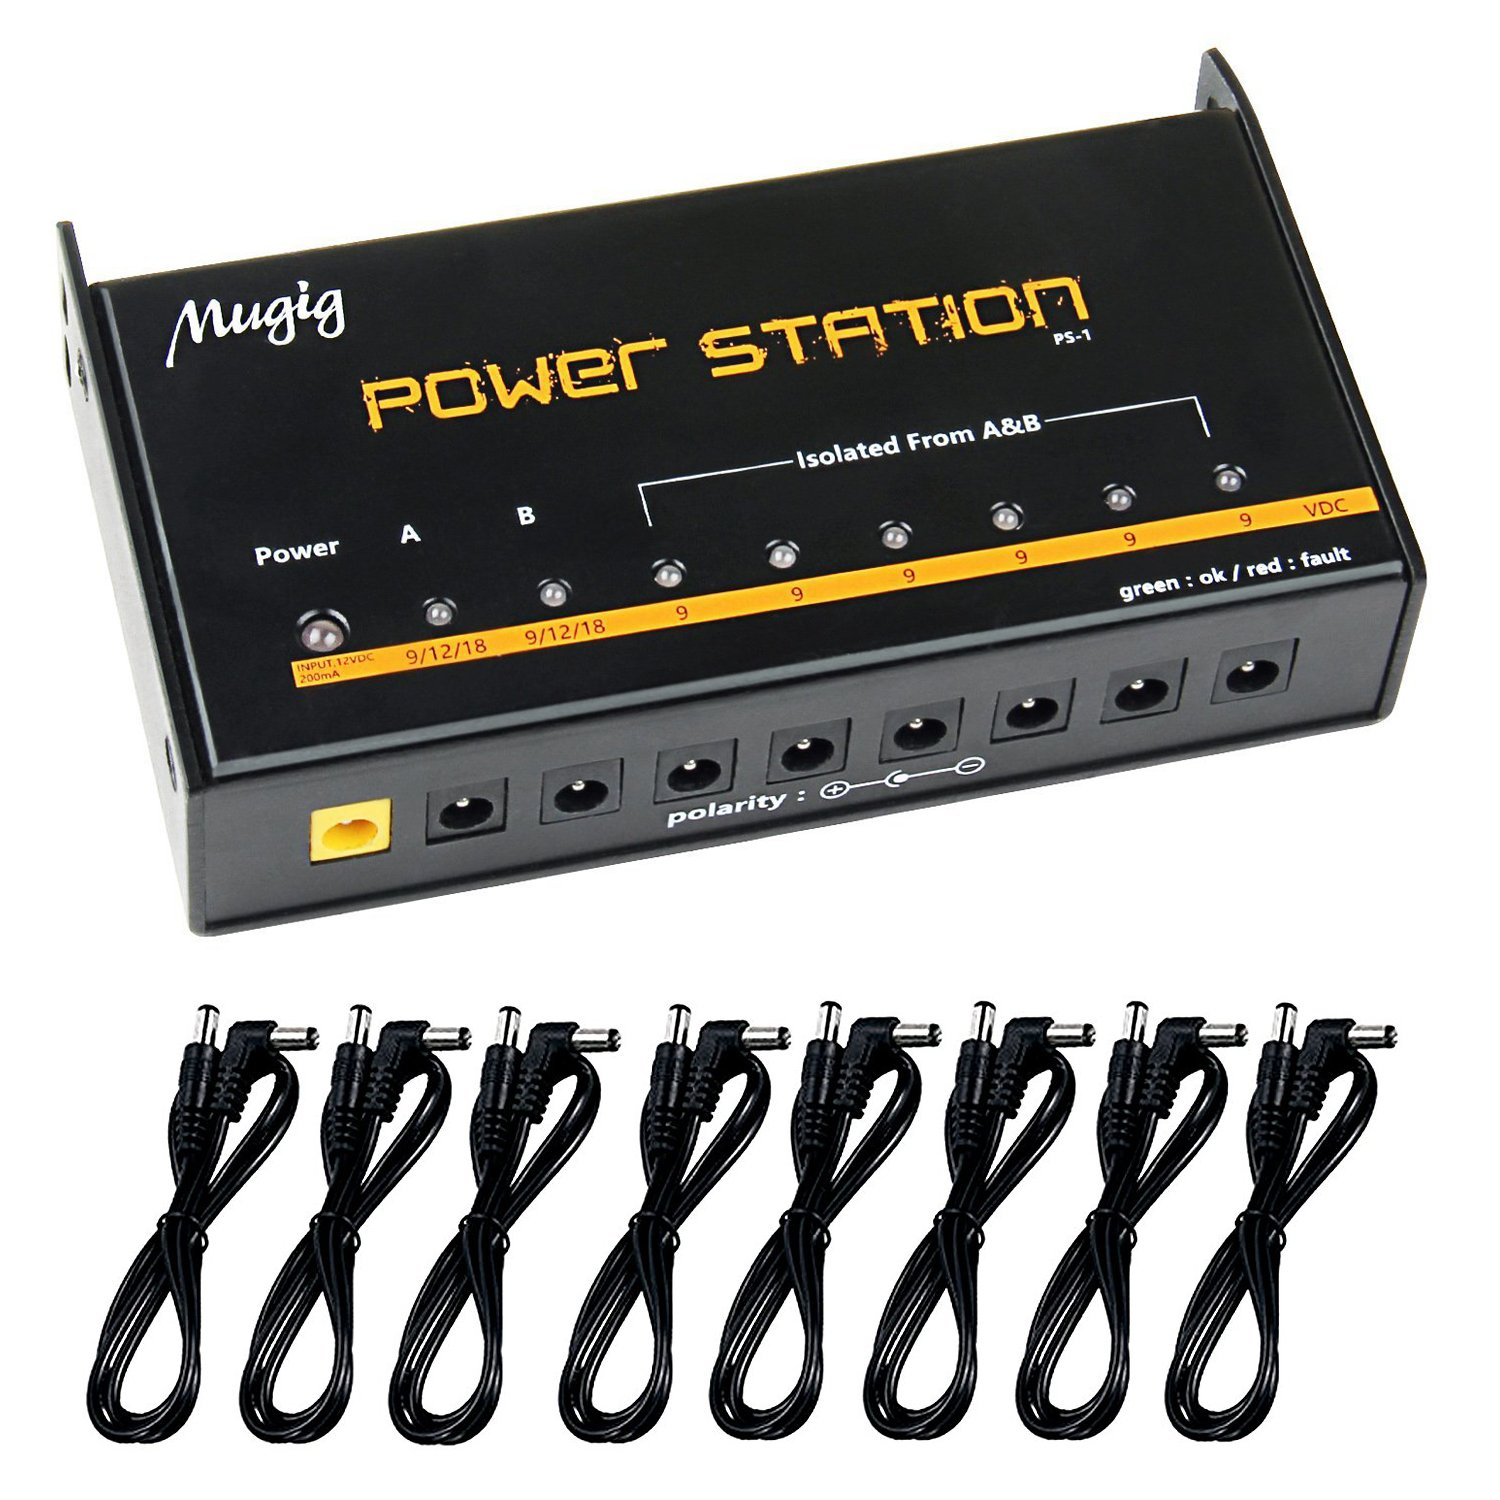 Mugig Guitar Pedal Power Supply 8 Outputs for 9V / 12V / 18V Effect Pedal Power Station with Isolated Short Circuit and Over Current Protection PS-1